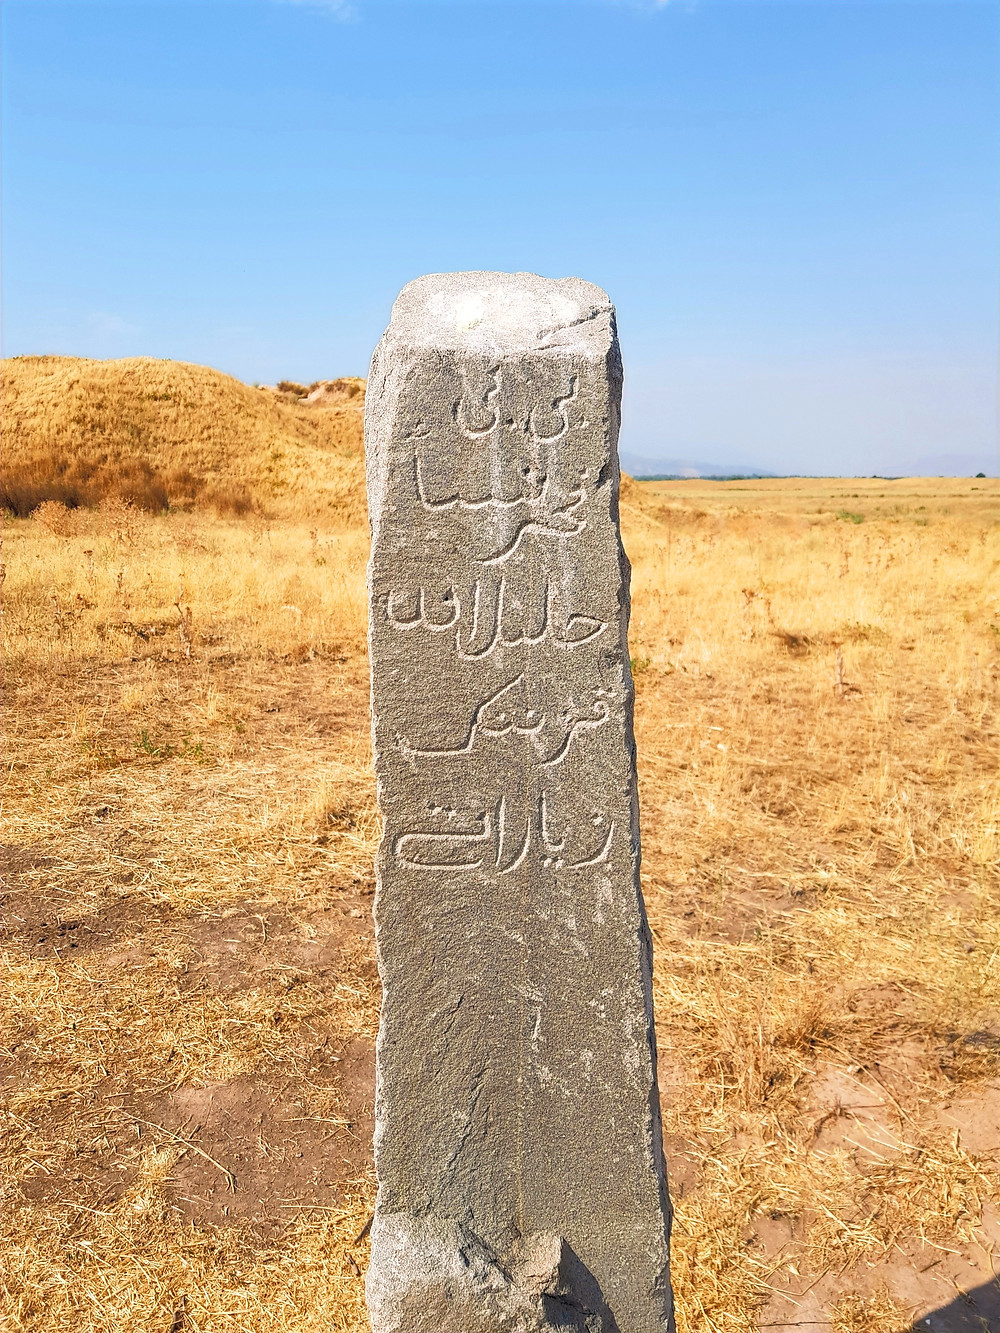 Carved stone in burana tower Kyrgyzstan  area with what appears to be Farsi